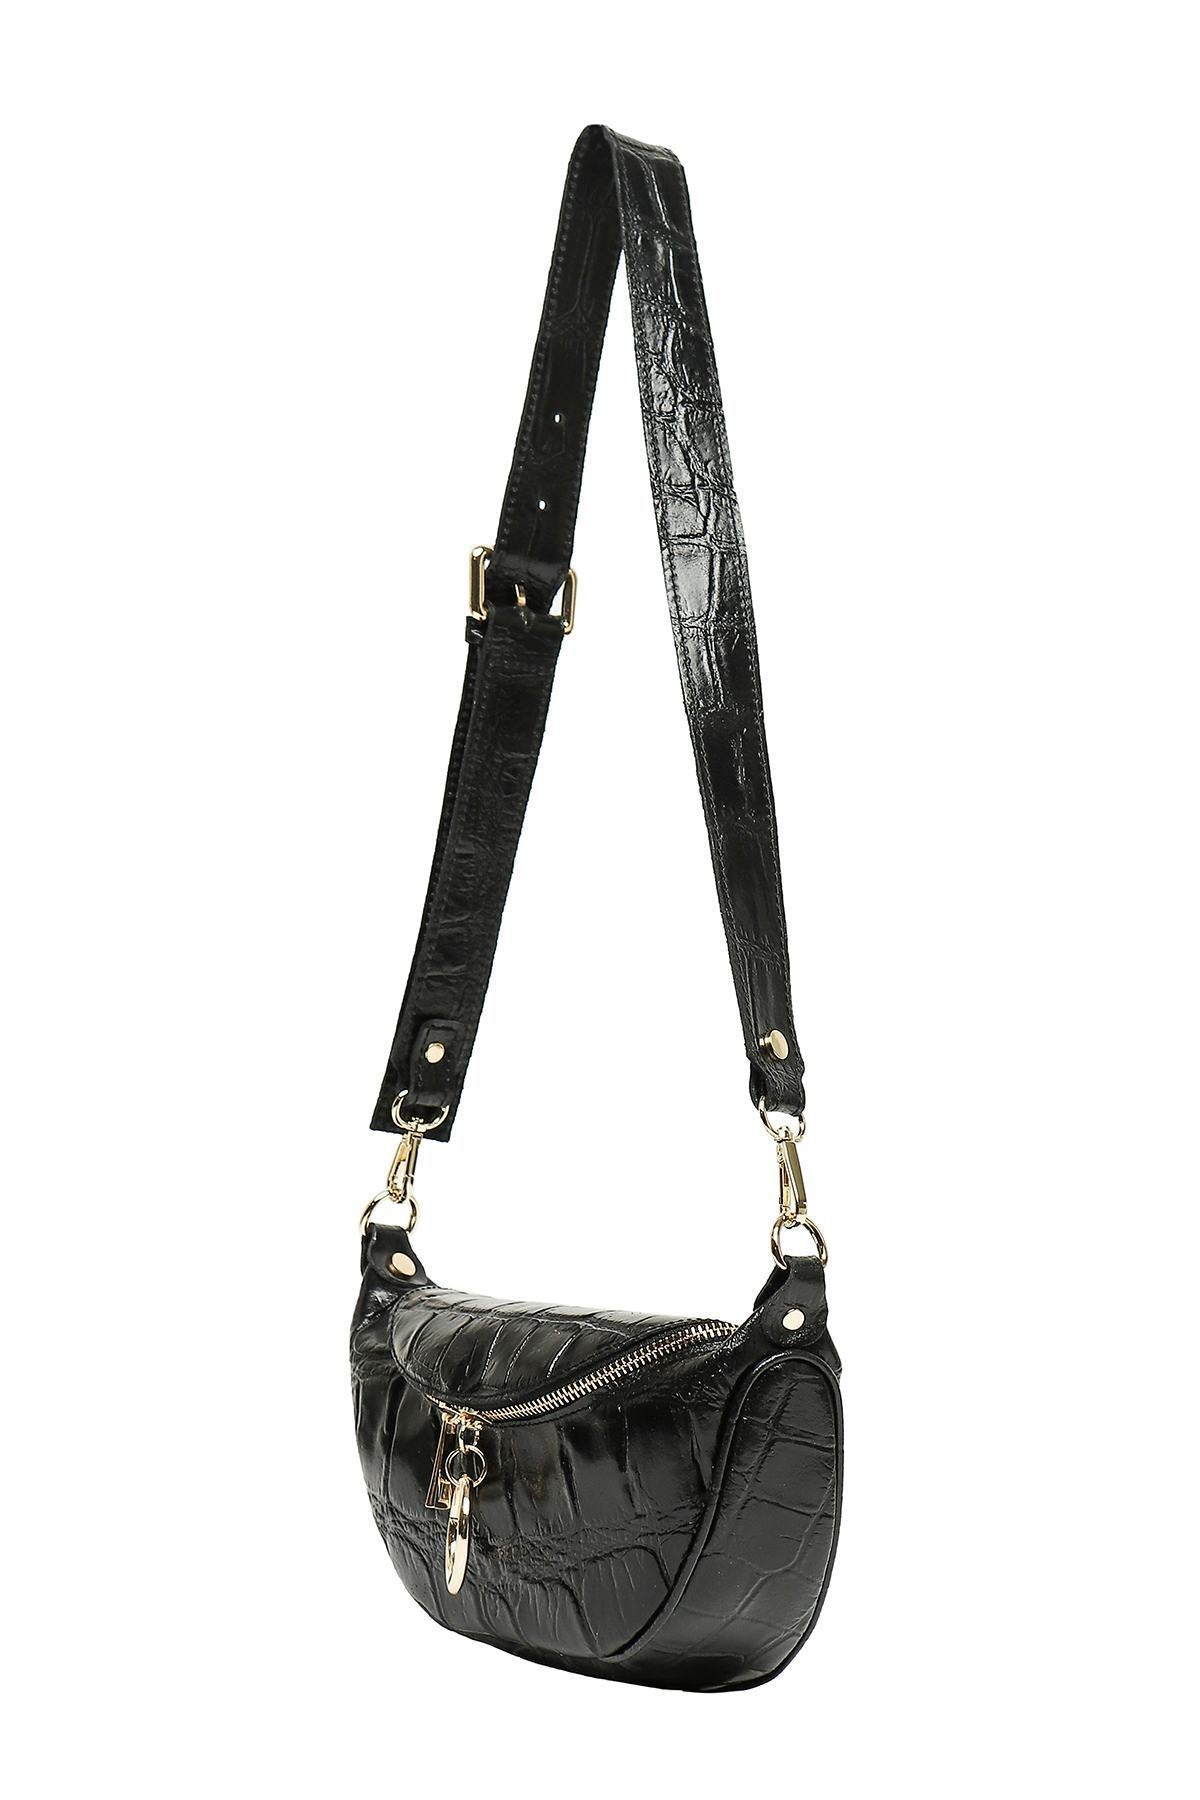 Cherry Paris - Isabelle banana bag black